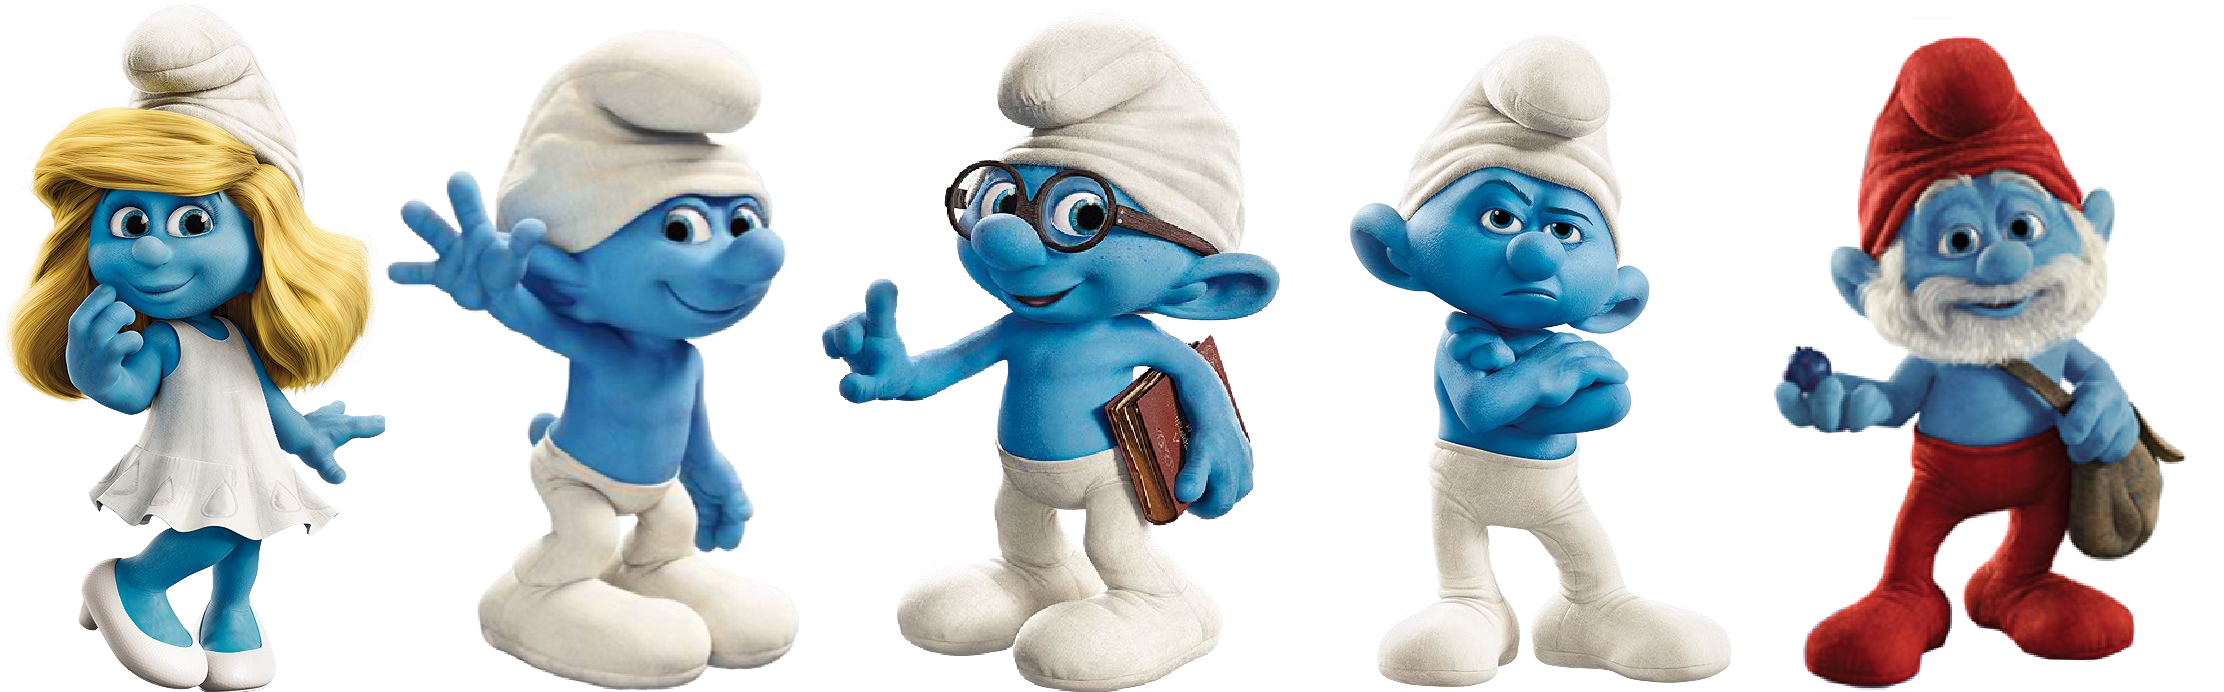 The Smurfs - Pooh's Adventures Wiki